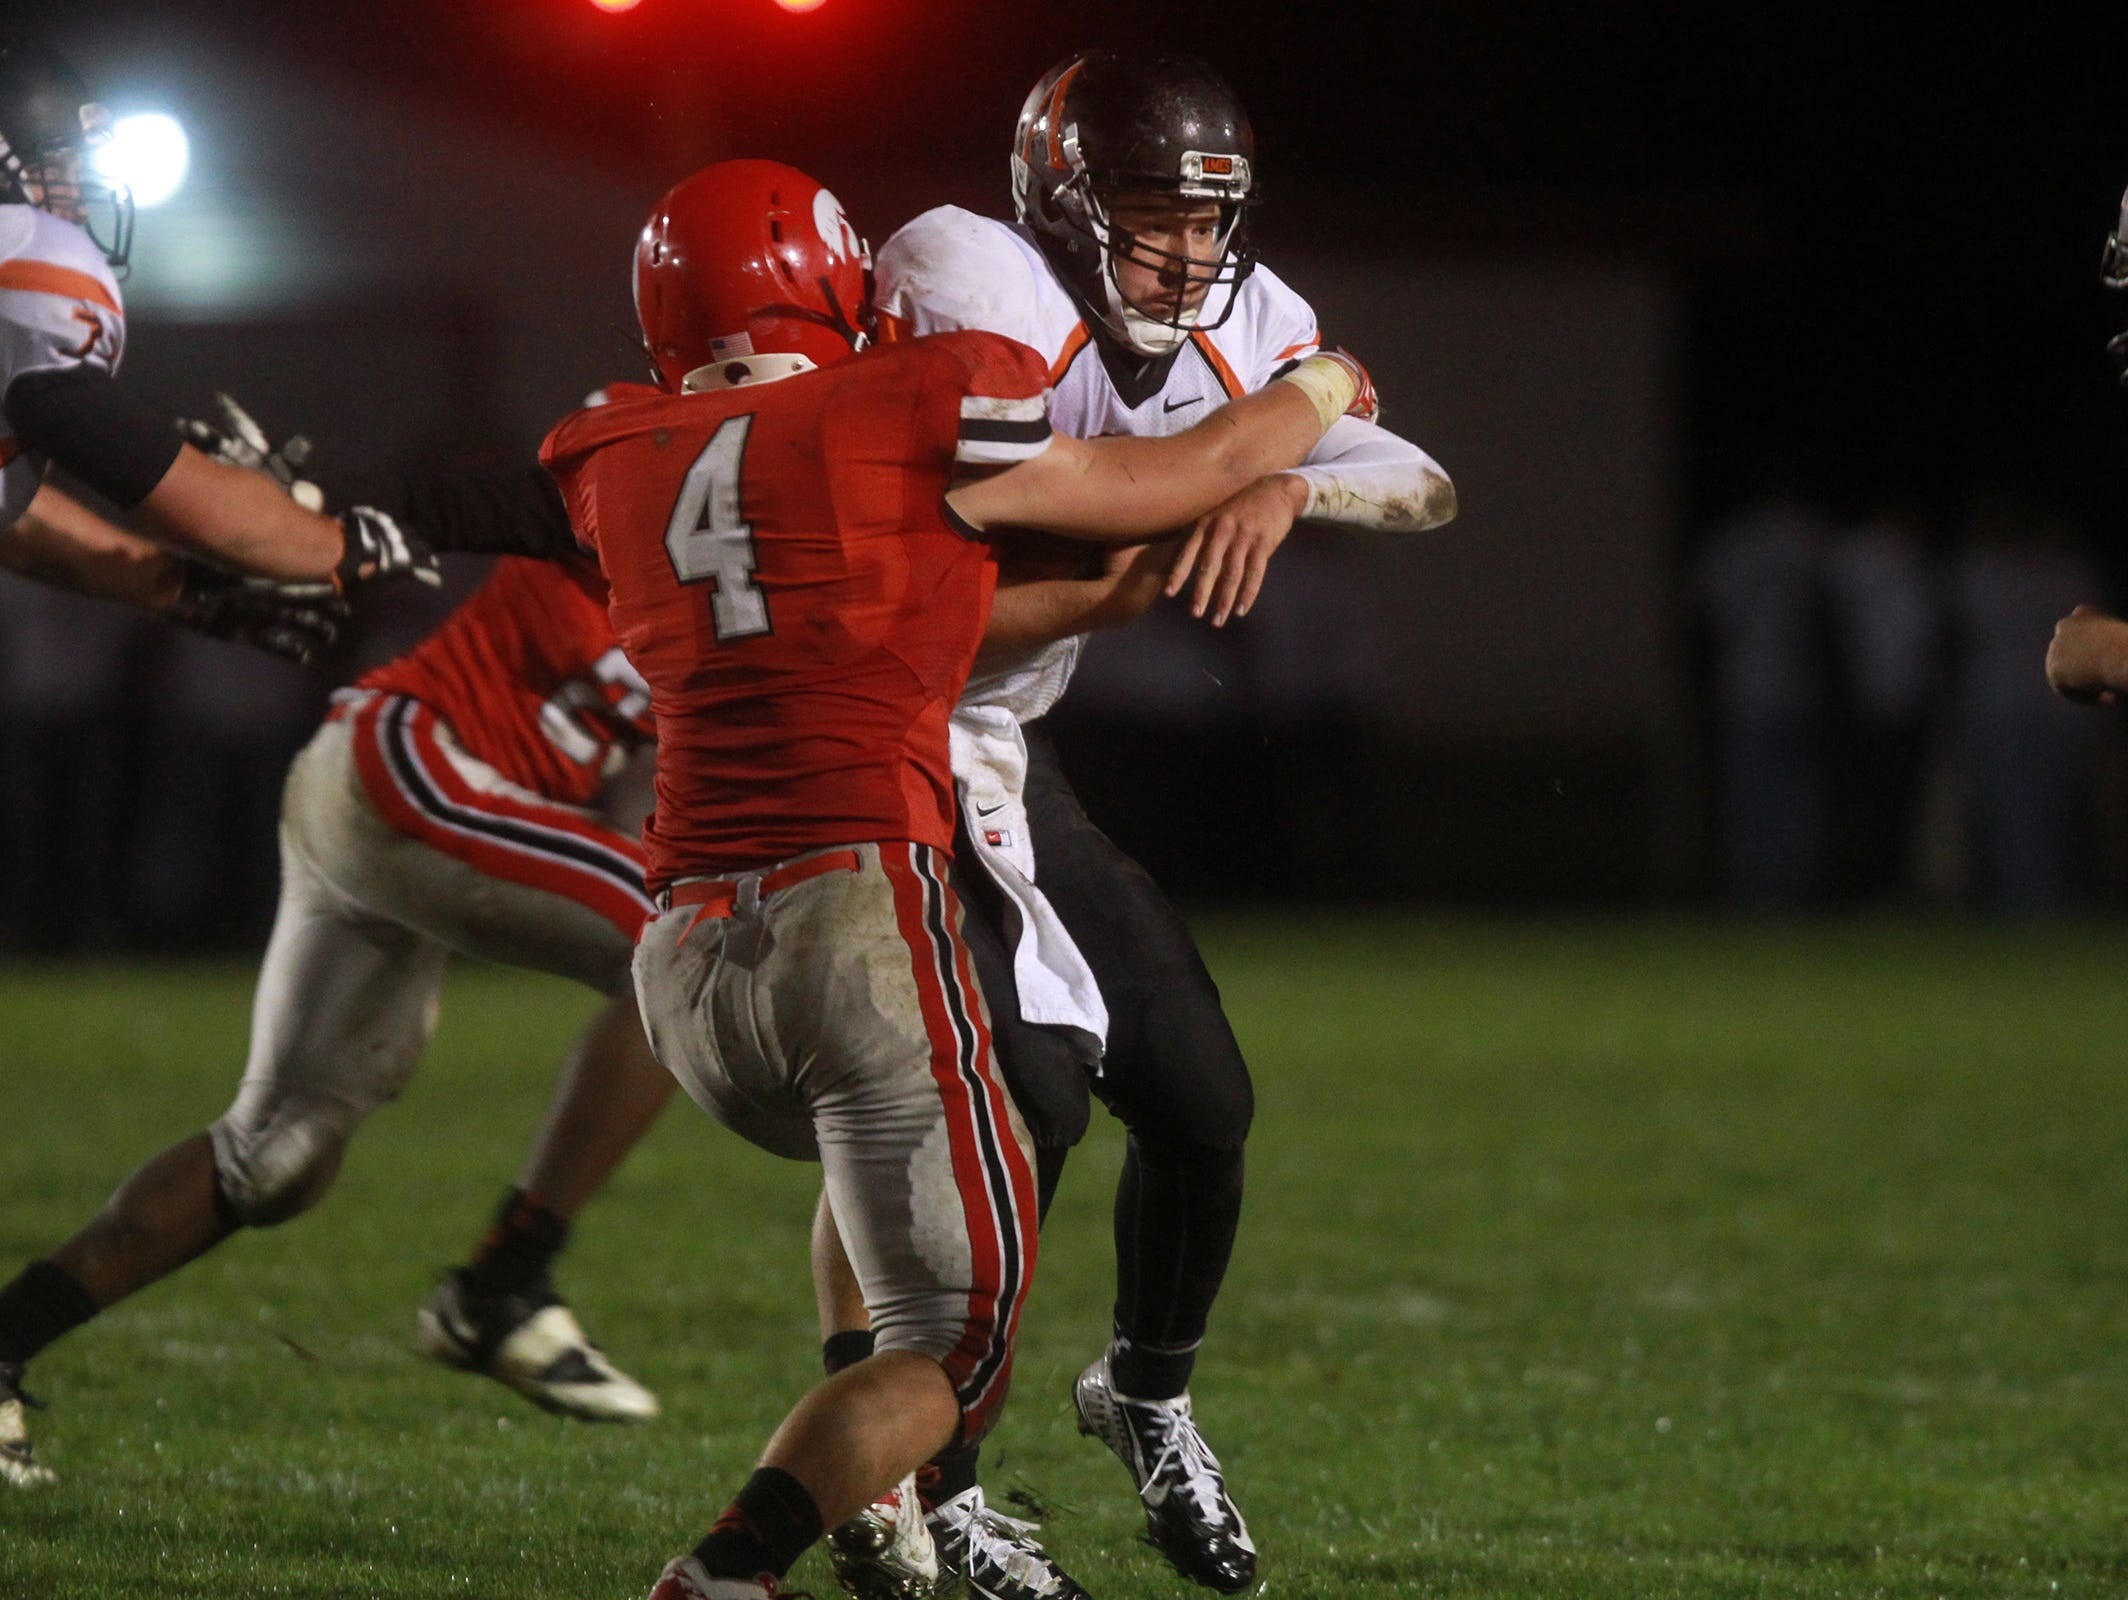 City High's Erick Fletcher stops Ames quarterback Michael Frankl during their game at City High on Friday, Sept. 12, 2014. David Scrivner / Iowa City Press-Citizen